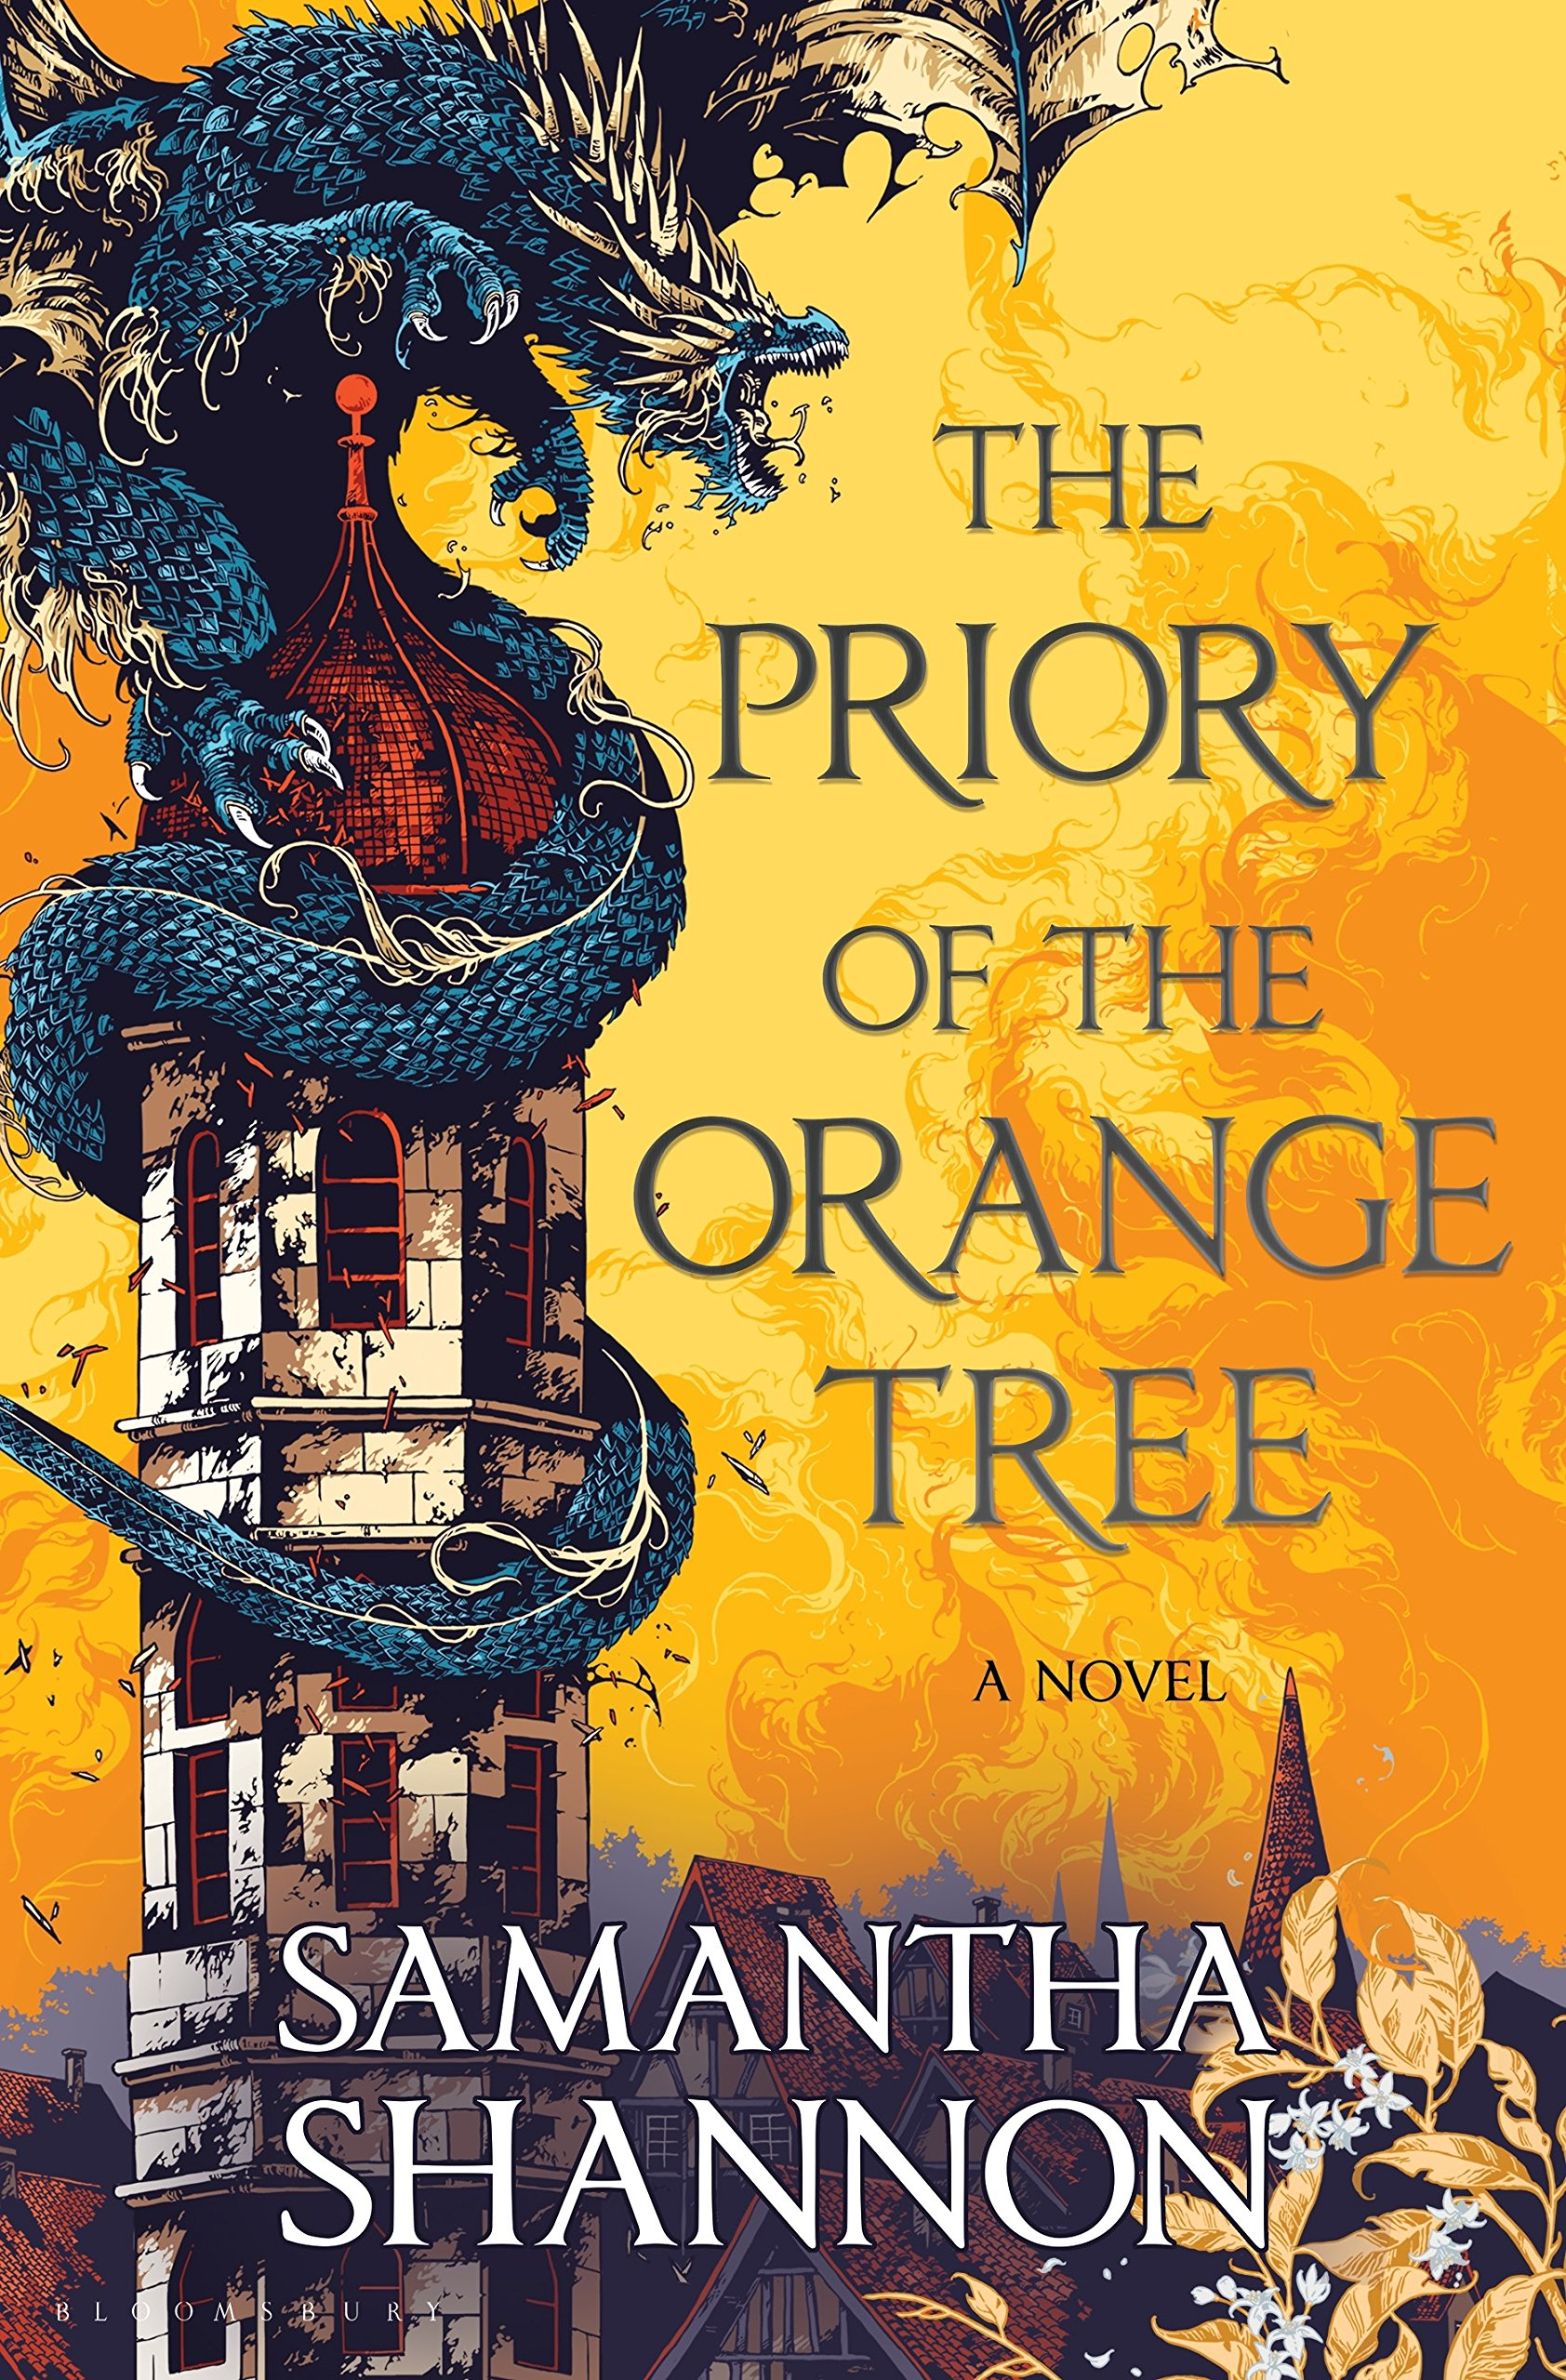 Image result for the priory of the orange tree cover